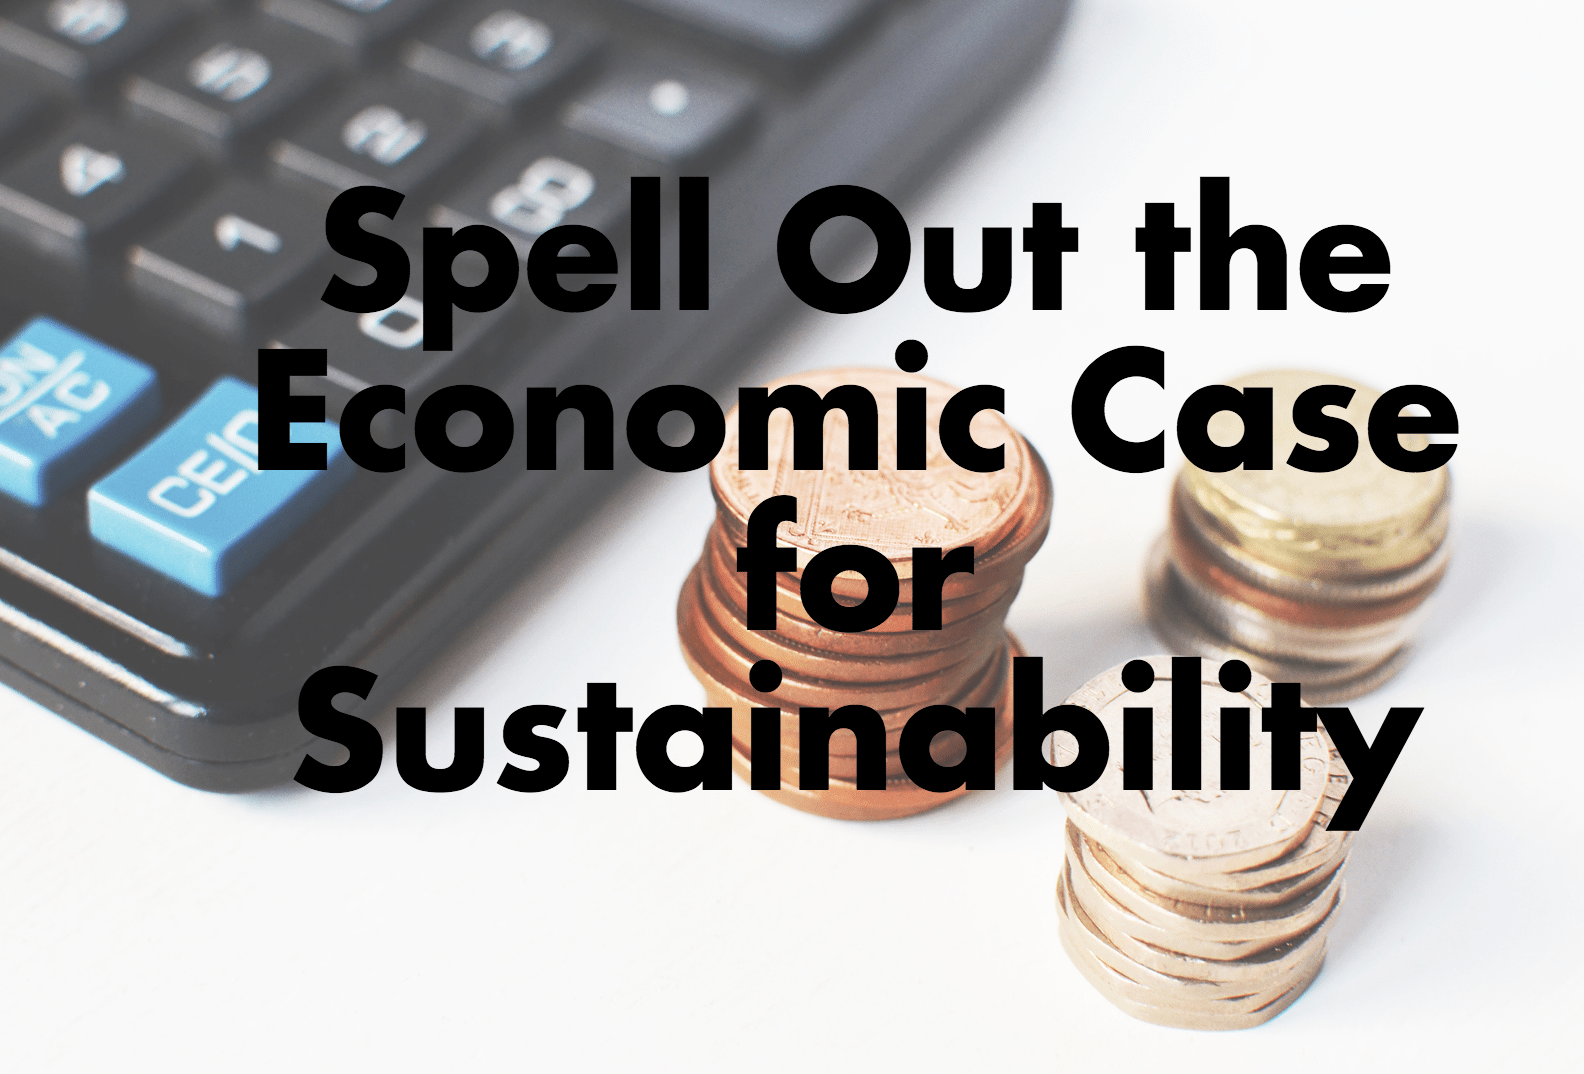 Spell out the economic case for sustainability.